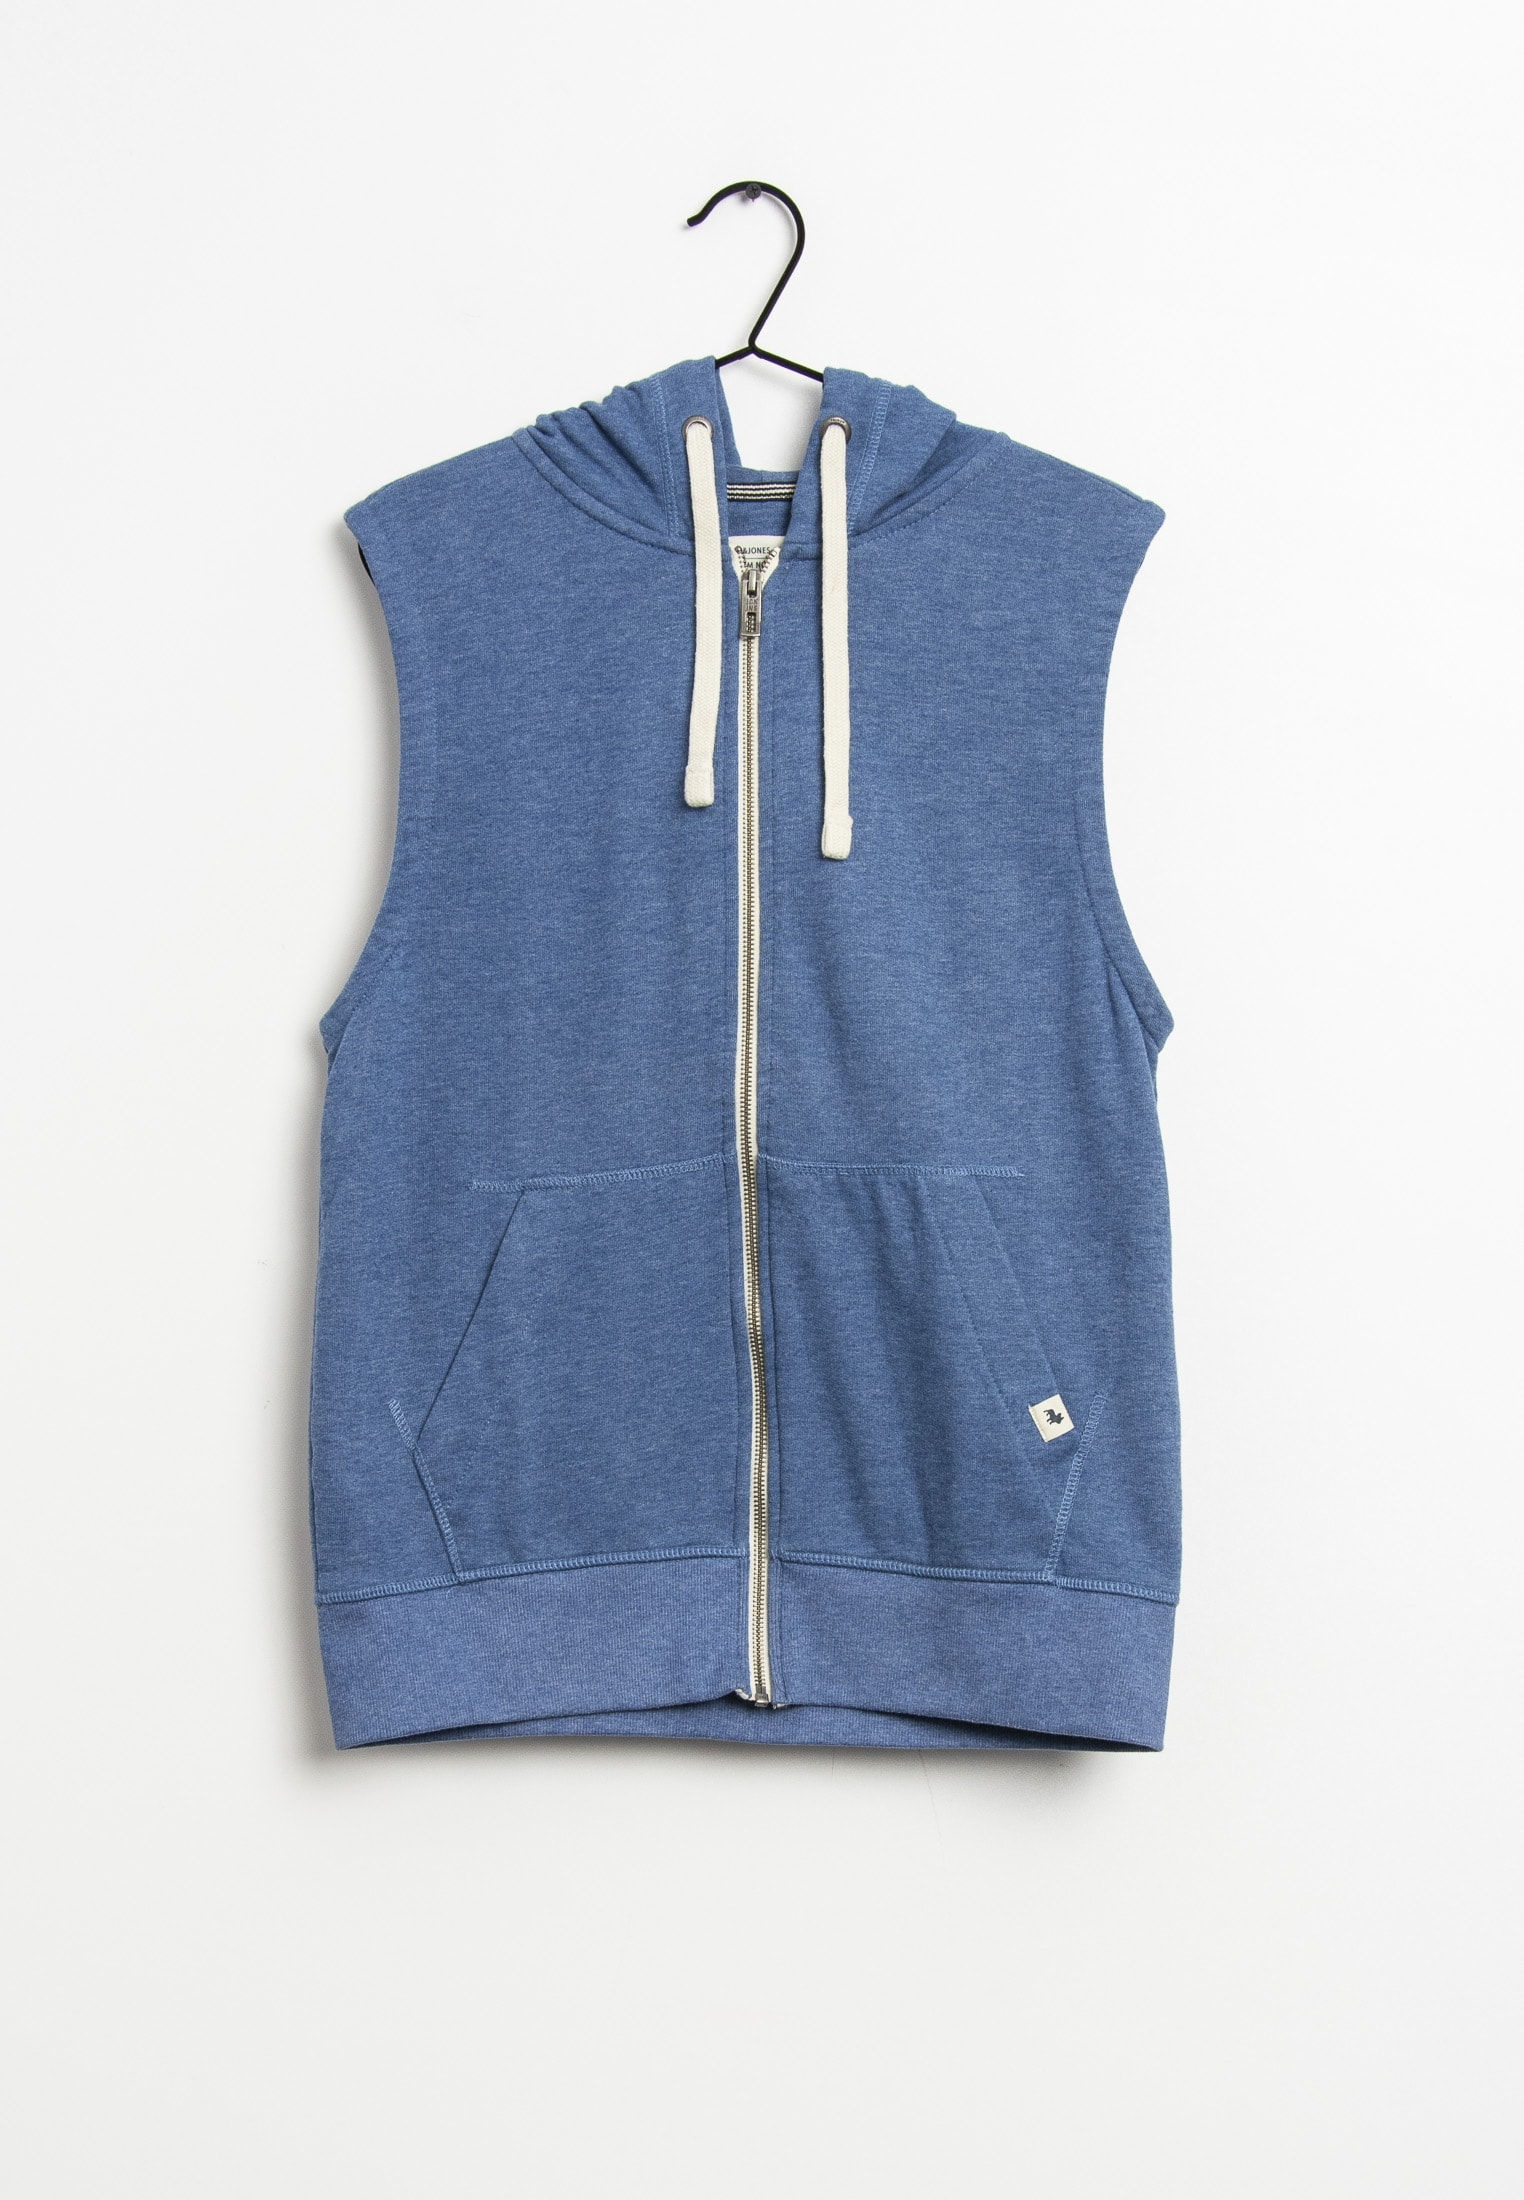 Jack & Jones Sweat / Fleece Blau Gr.L